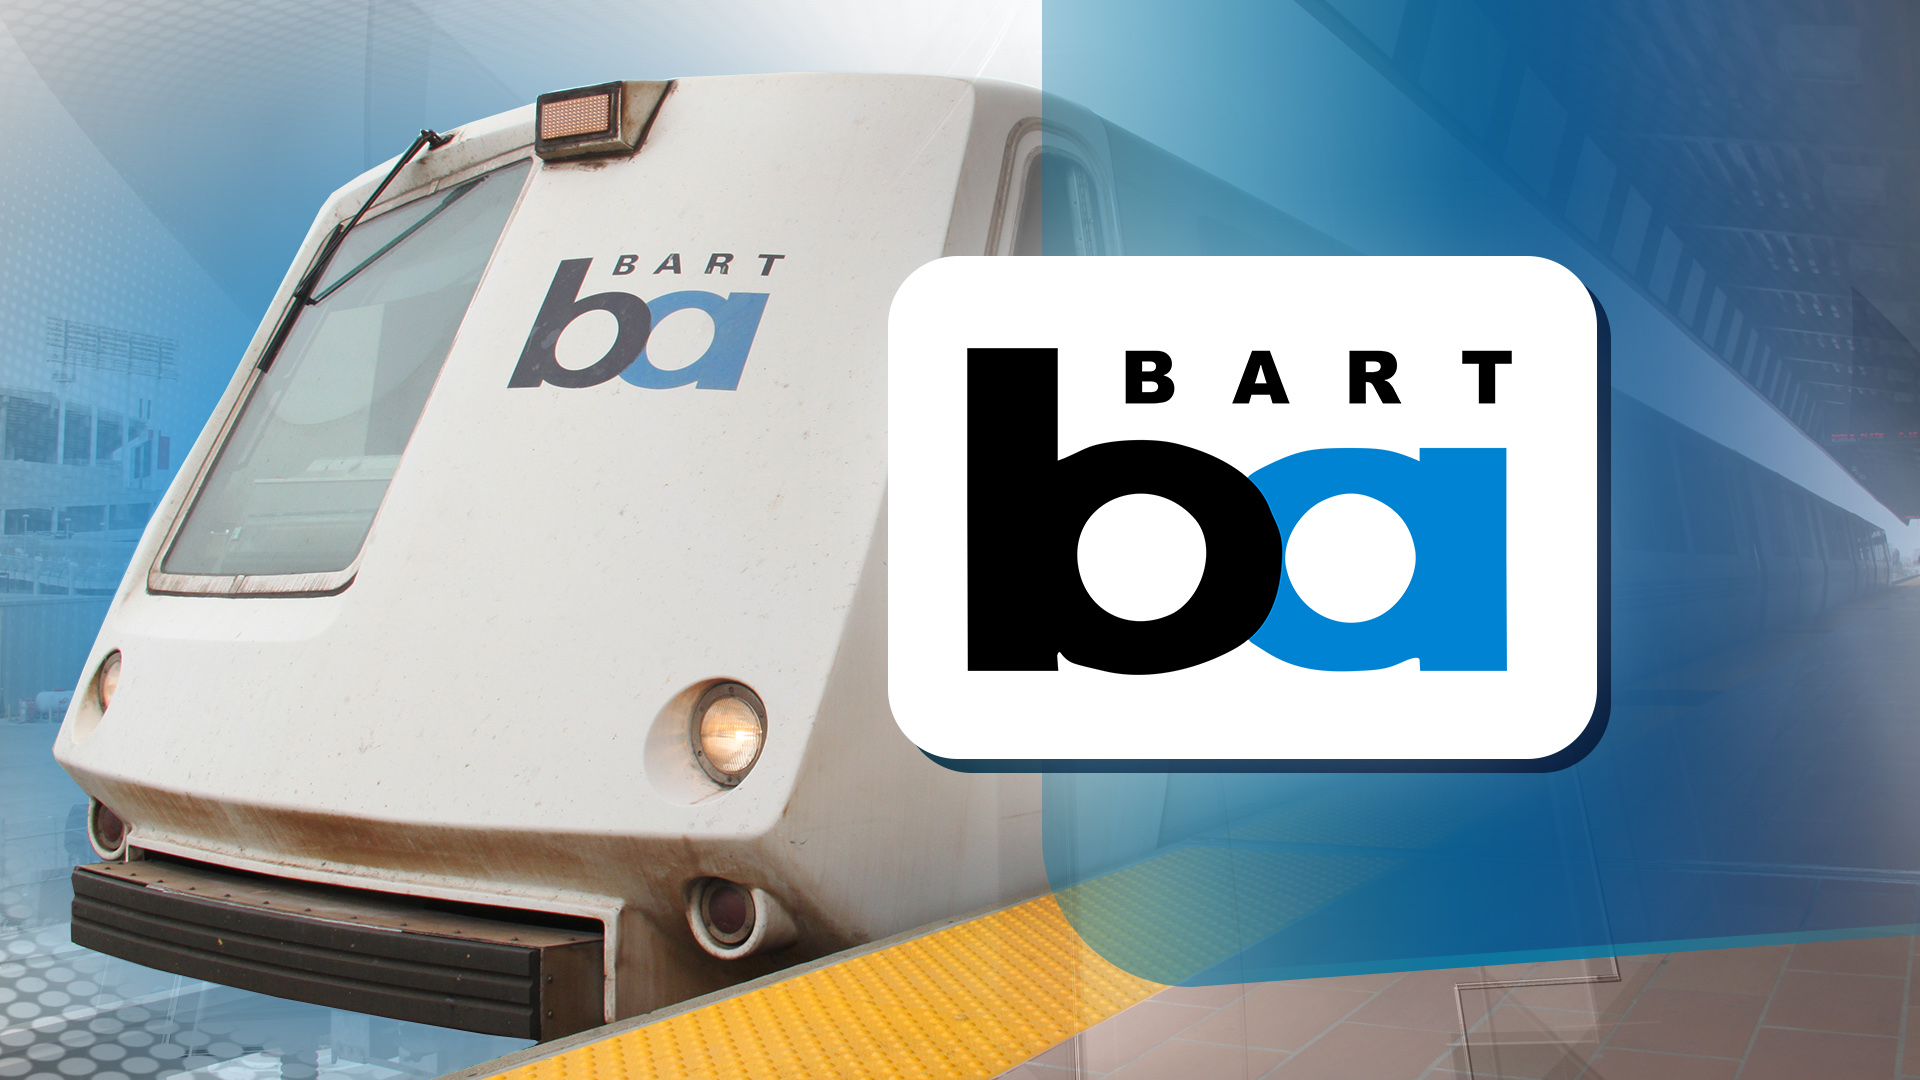 BART experiences major delays due to hot weather